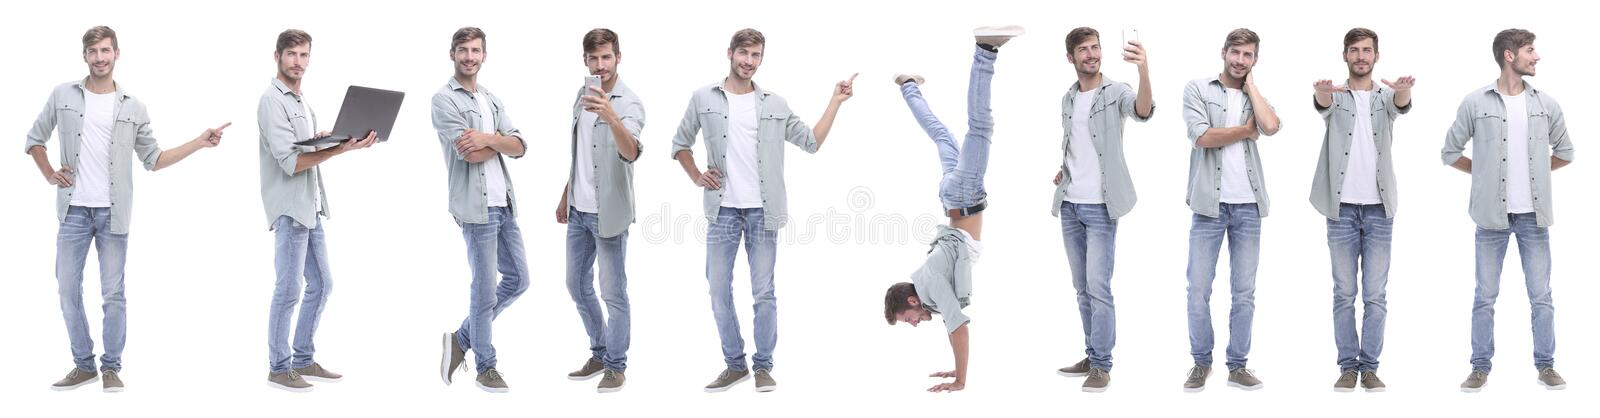 Panoramic collage of young people leading a healthy lifestyle stock photos